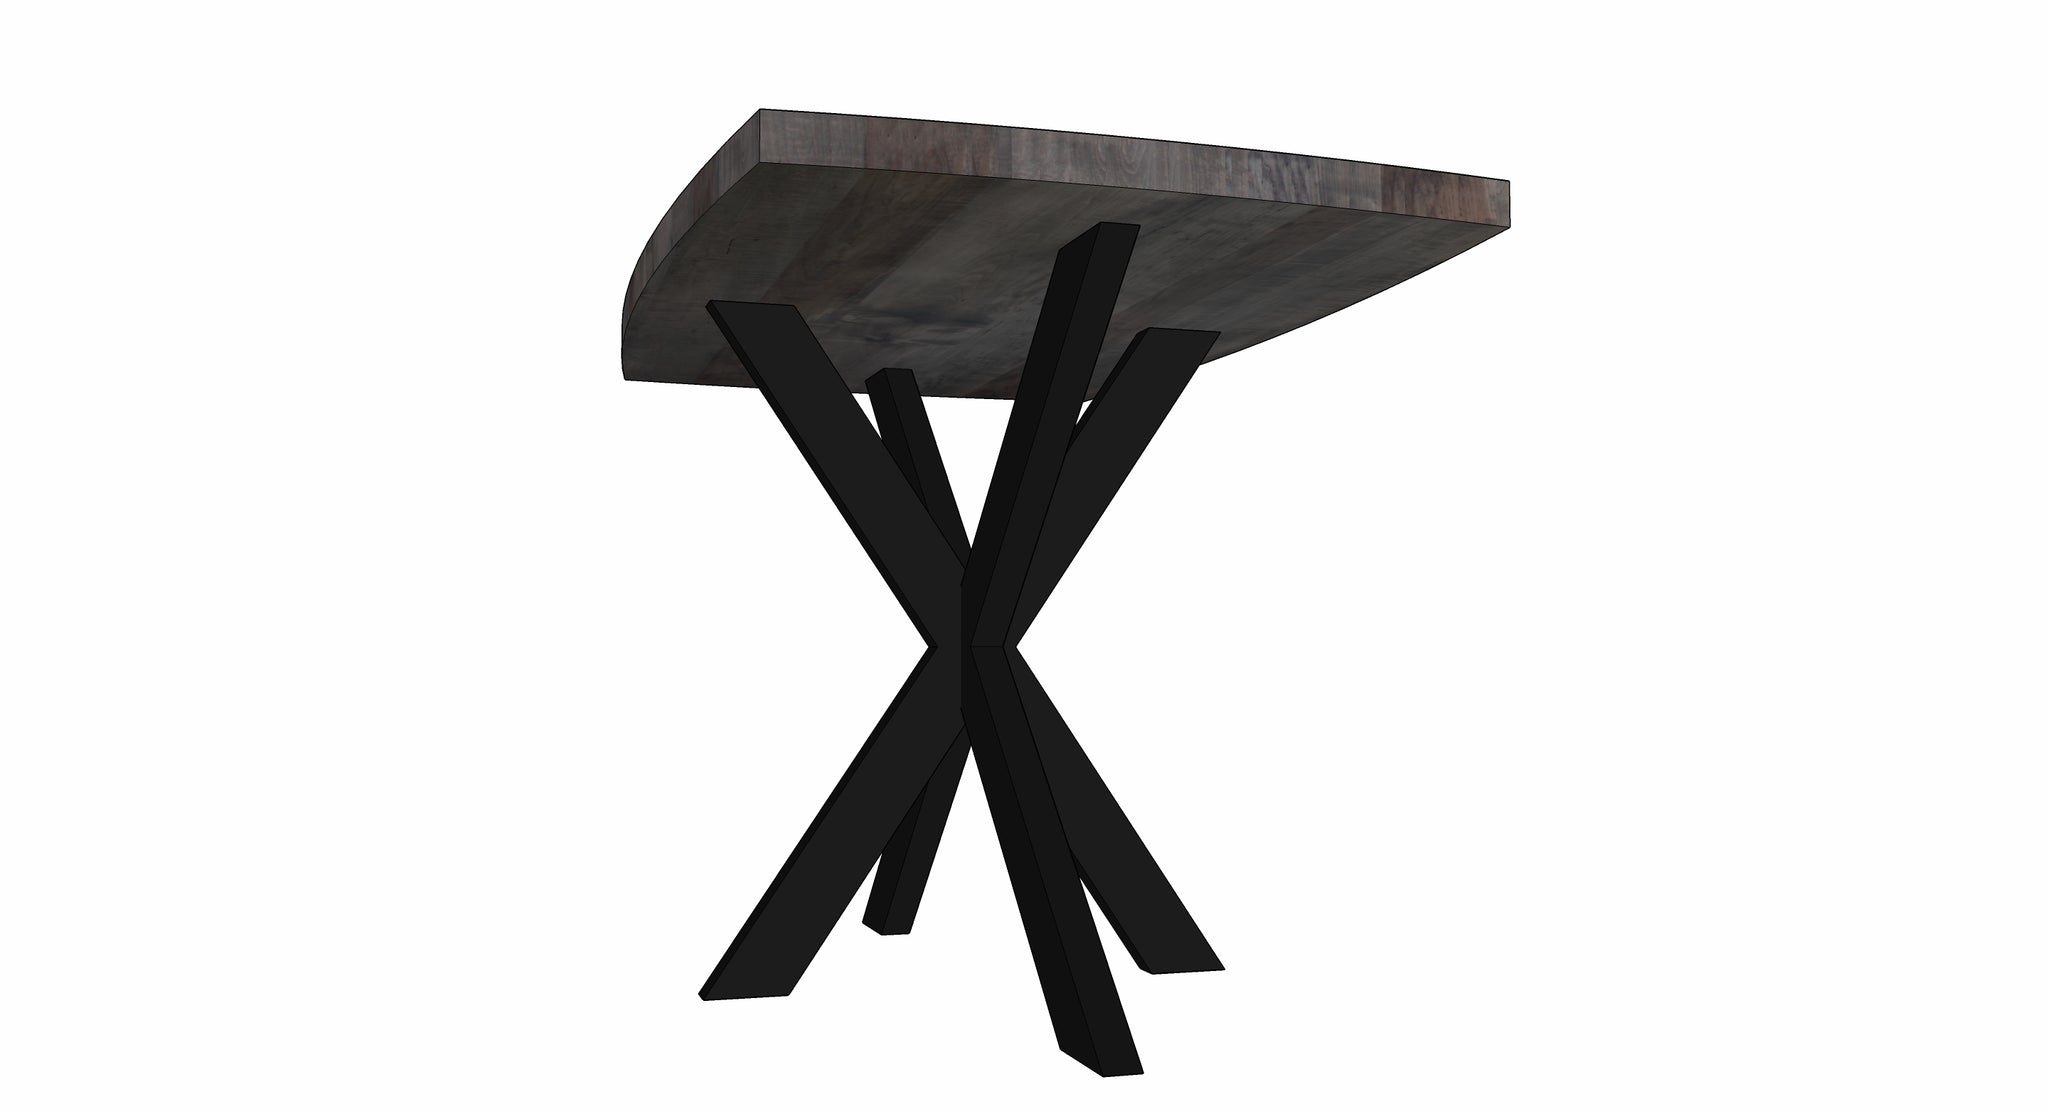 custom jak bar table | worn maple with matte black powder coated steel base